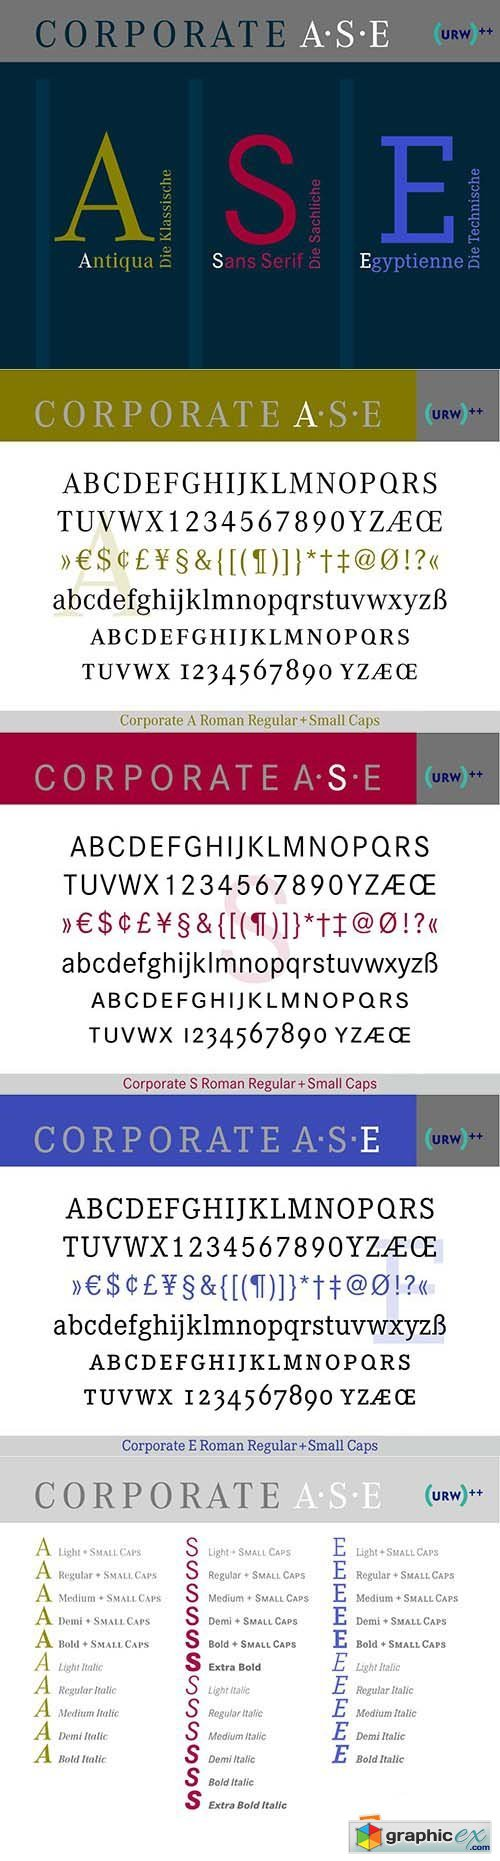 Corporate A S E Typeface Trilogy Font Collection - 53 Font $4770